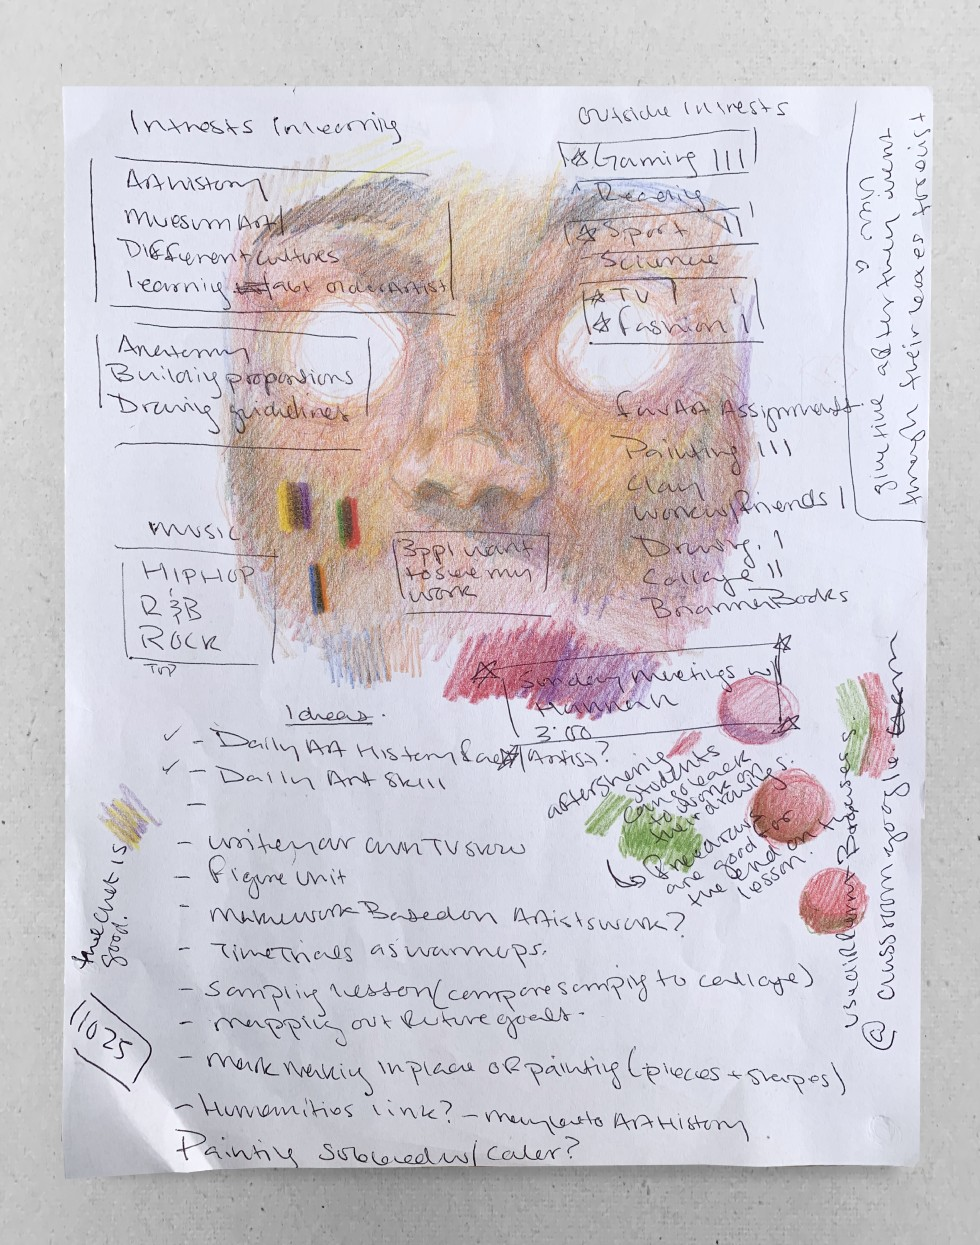 This sketch documents the results from a survey that was sent to assess students' interests. Based on the survey students seemed to be interested in painting. Due to schools being taught virtually, I experimented with color pencil in an attempt to replica